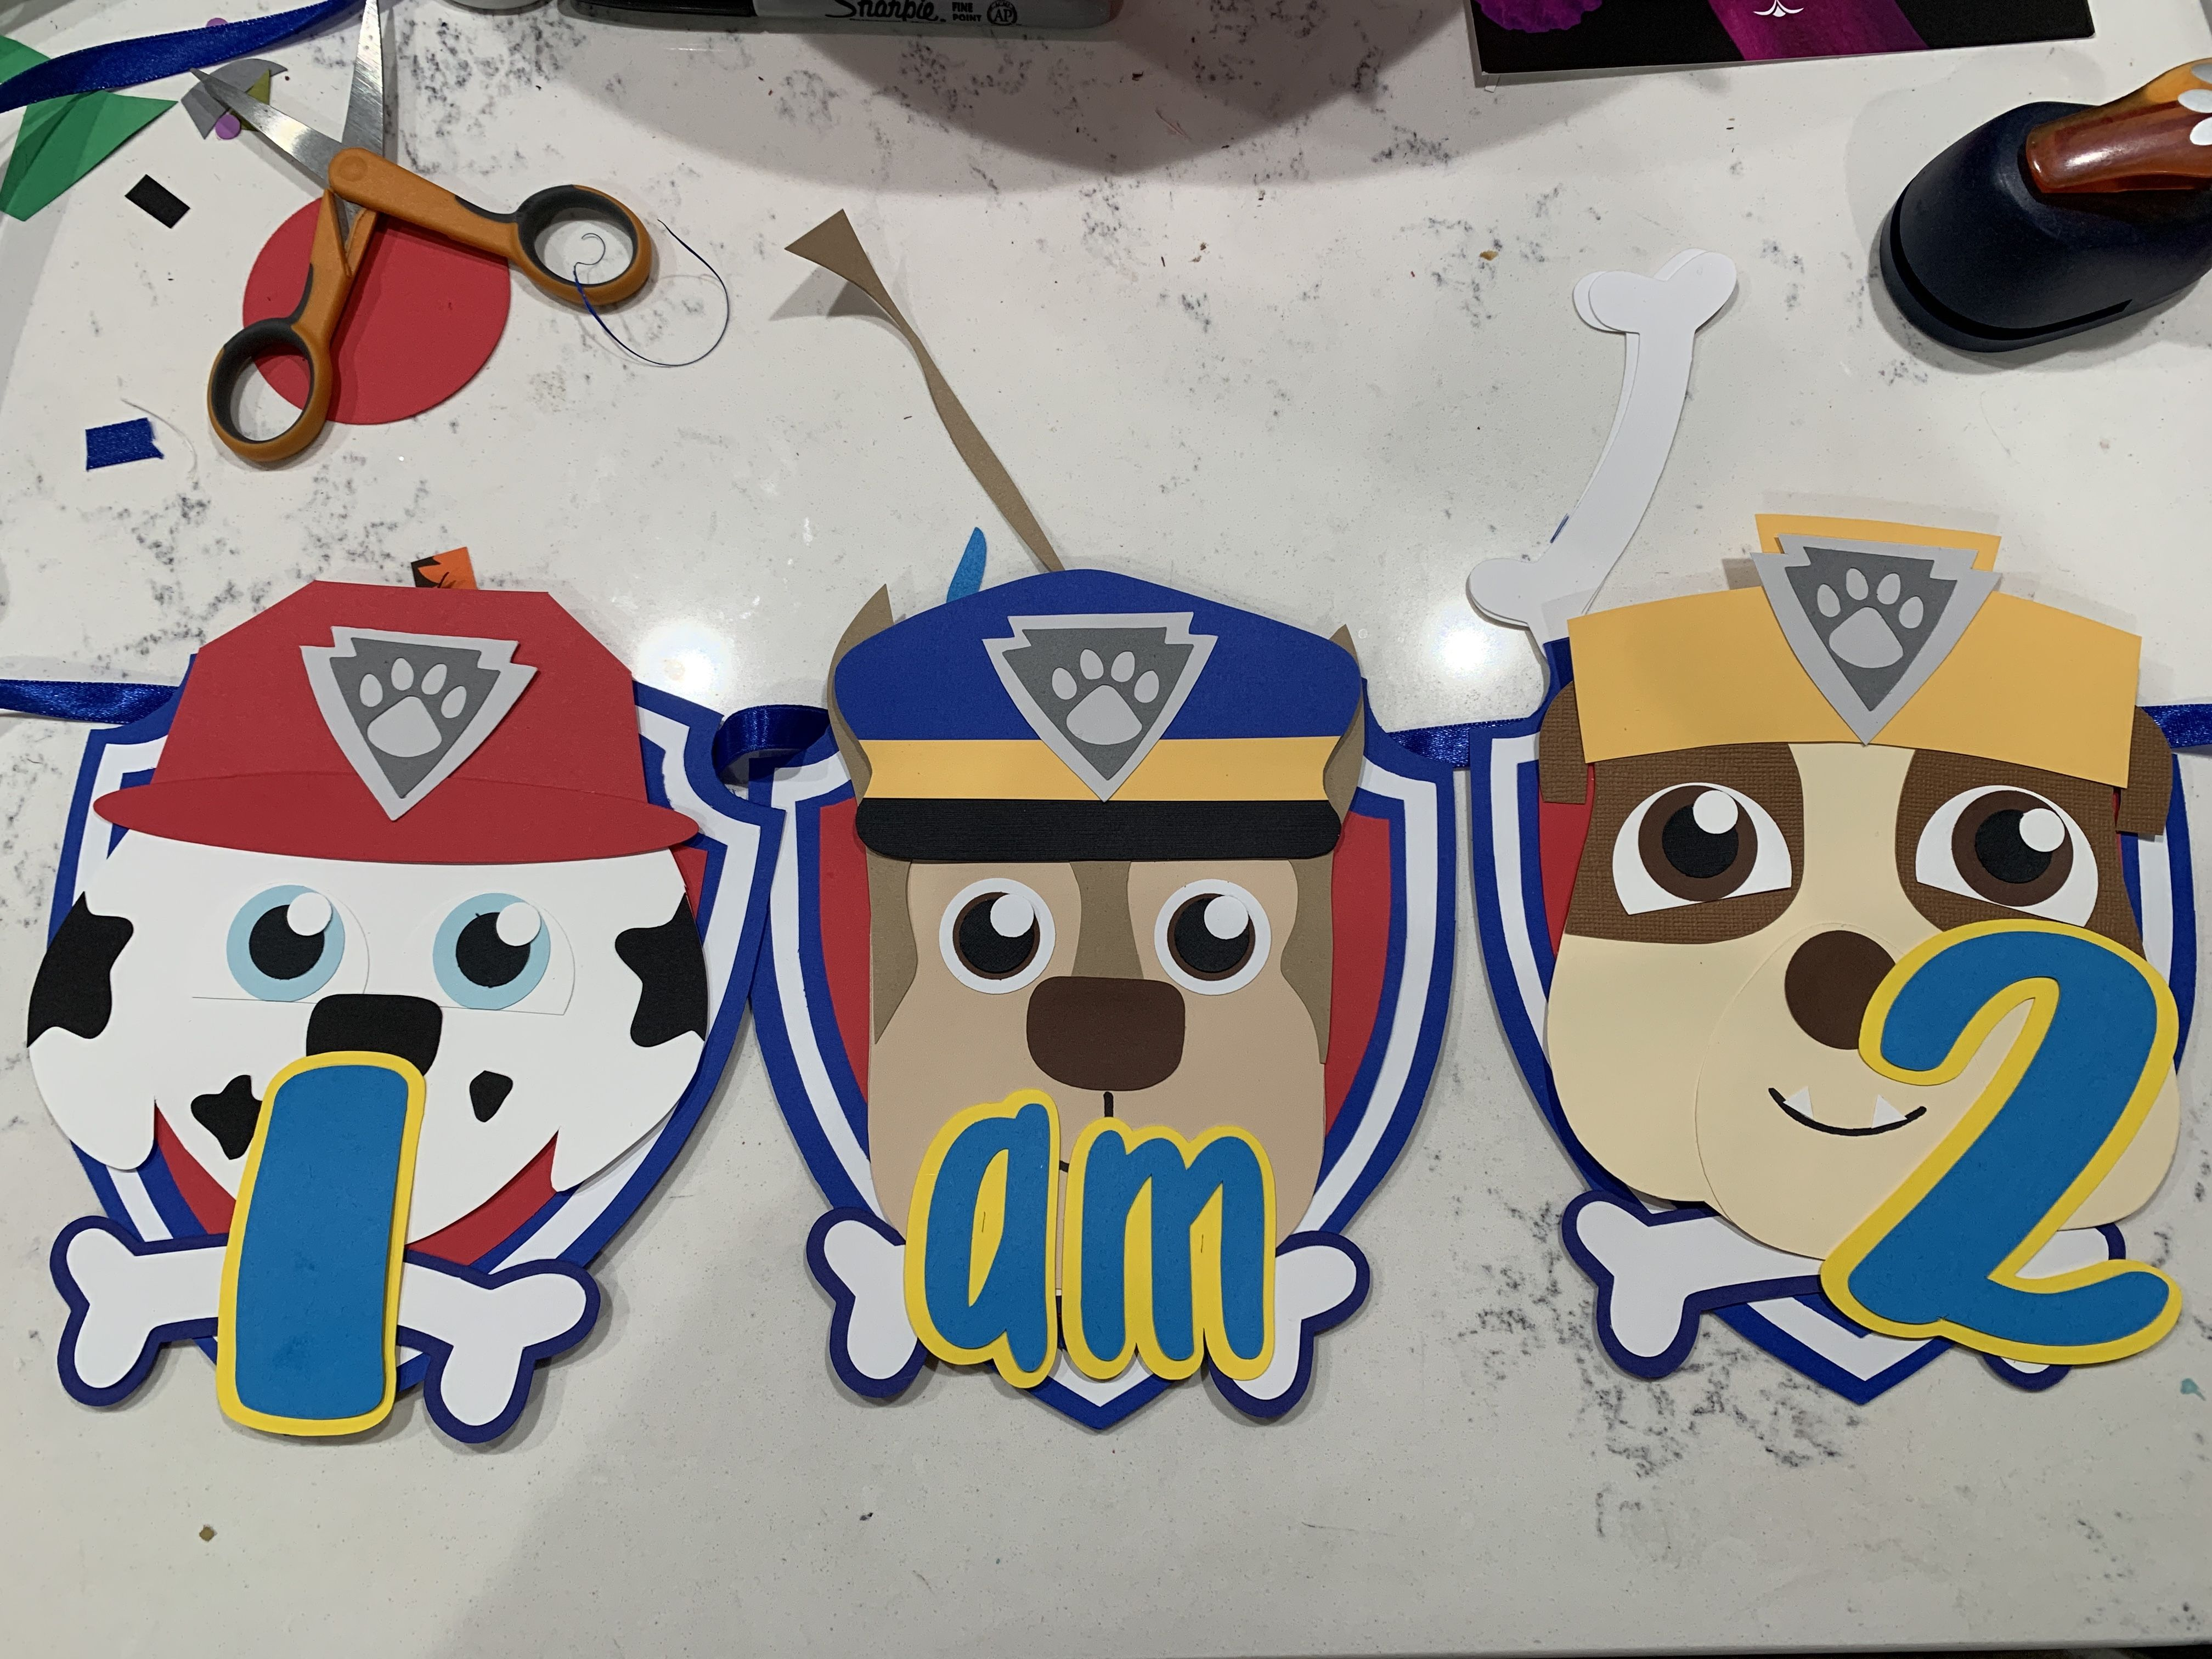 Paw patrol party, paw patrol party decorations, paw patrol high chair, high chair party decoration - Paw patrol party decorations, Paw patrol theme party, Paw patrol party, High chair banner, Paper garland, Patrol party - 8 inch wide silk ribbon  Each end is fold to create a hoop  No hook is included for you to hang it  I recommend the 3M COMMAND hooks, they don't damage the walls  Check out my  promotion  on the main page  You can qualify for a discount  I accept custom orders all the time  Check out my Facebook or instagram page for ideas @craftophologie